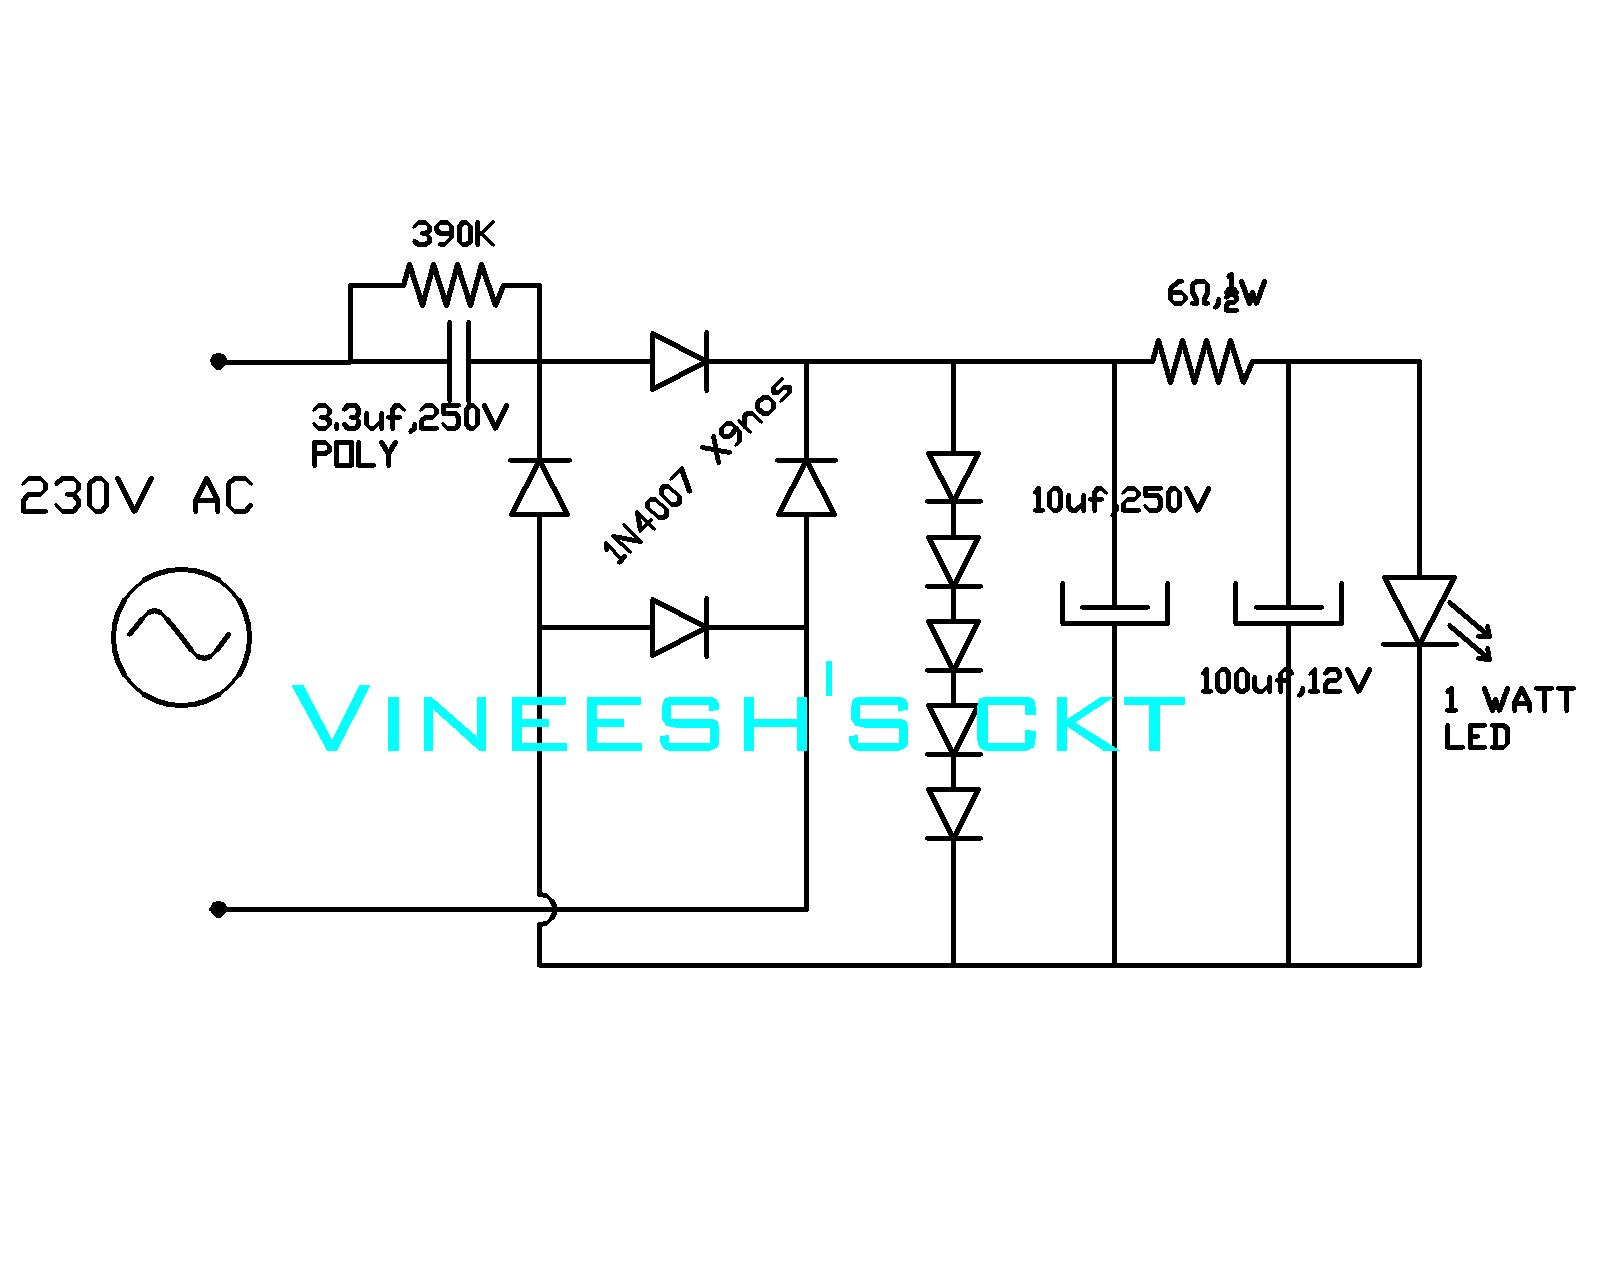 hight resolution of simple circuits vineetron 230v to 1 watt led driver simple led driver circuit diagram 1 watt led driver circuit